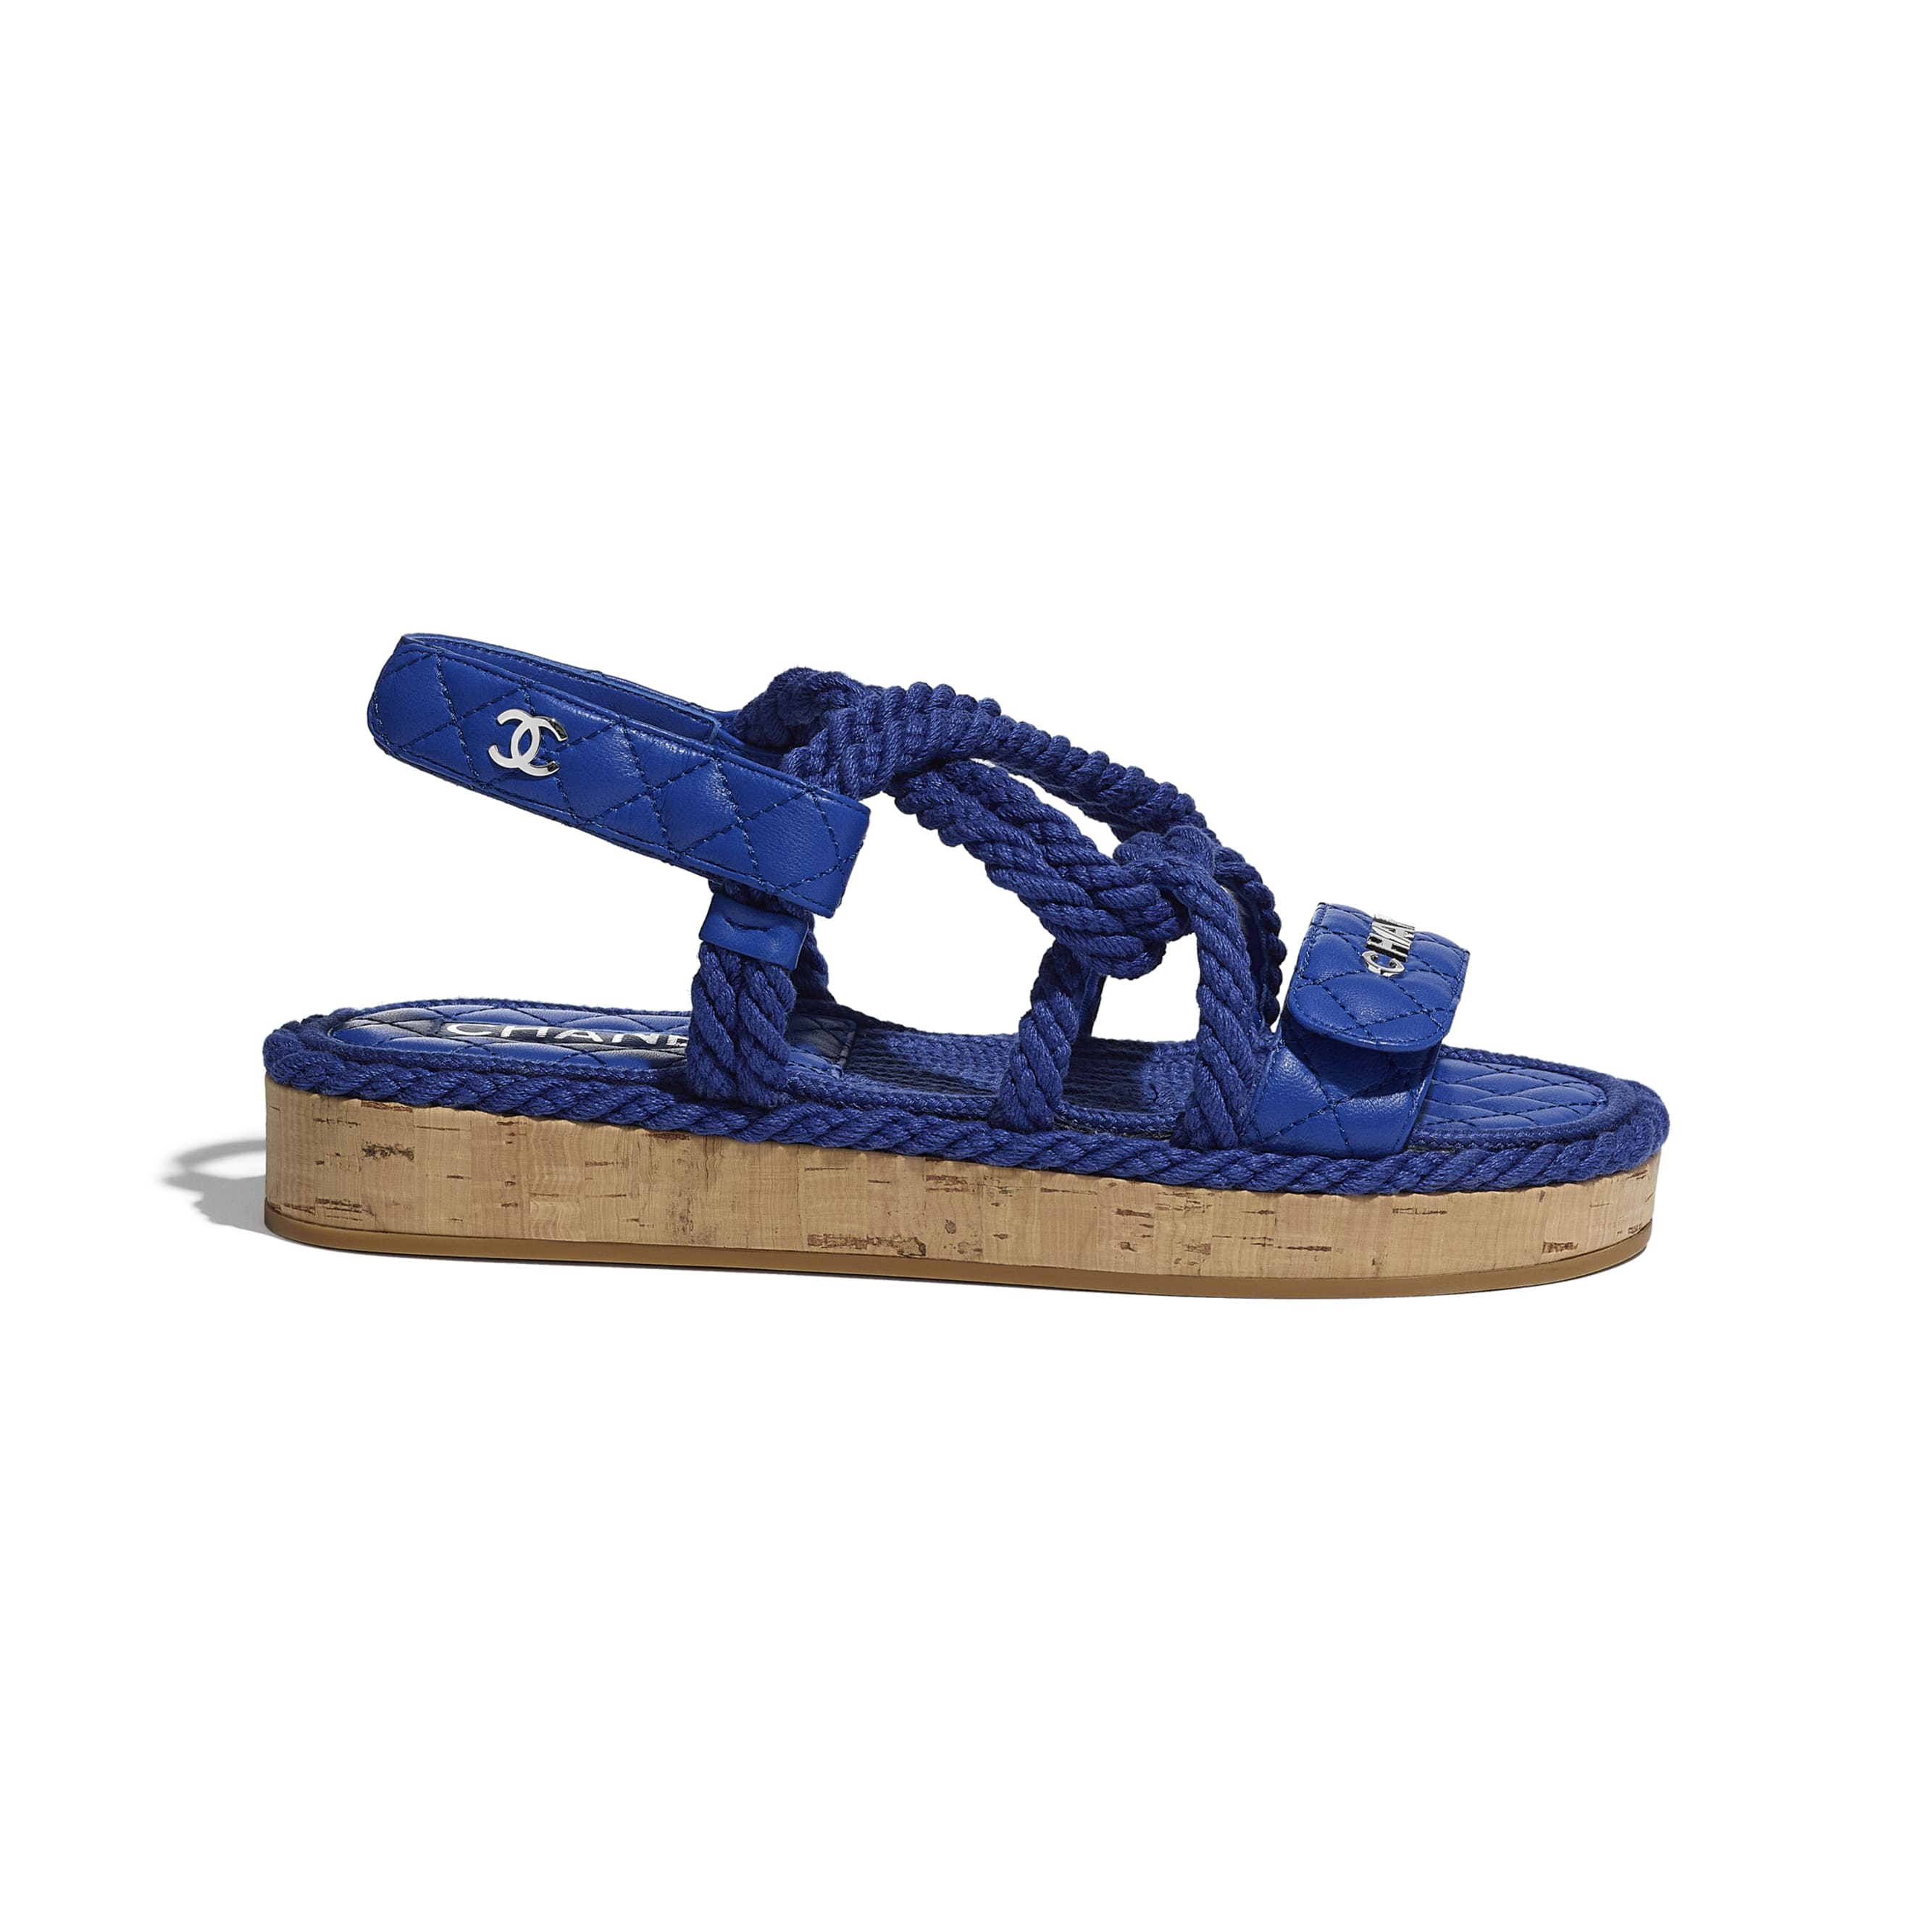 Sandals - Blue - Cord & Lambskin - CHANEL - Default view - see standard sized version